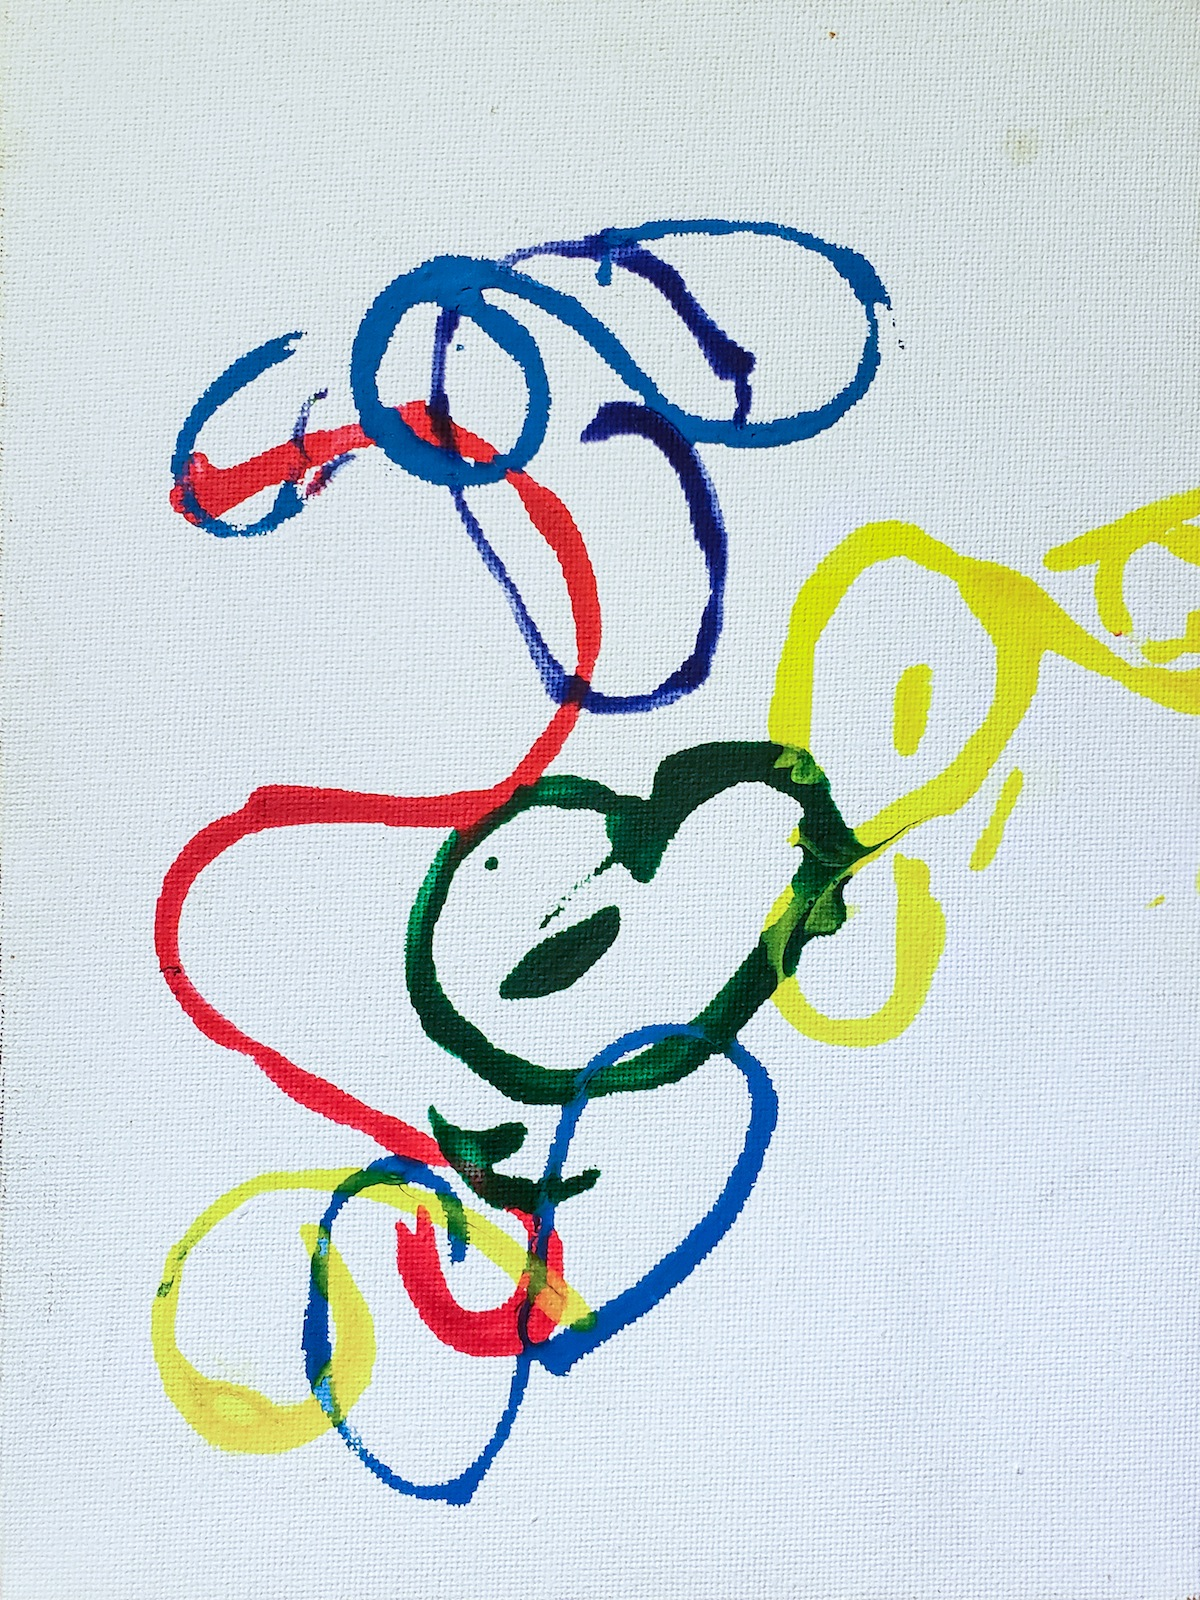 A painting on canvas featuring blue, red, yellow, and green curvy lines